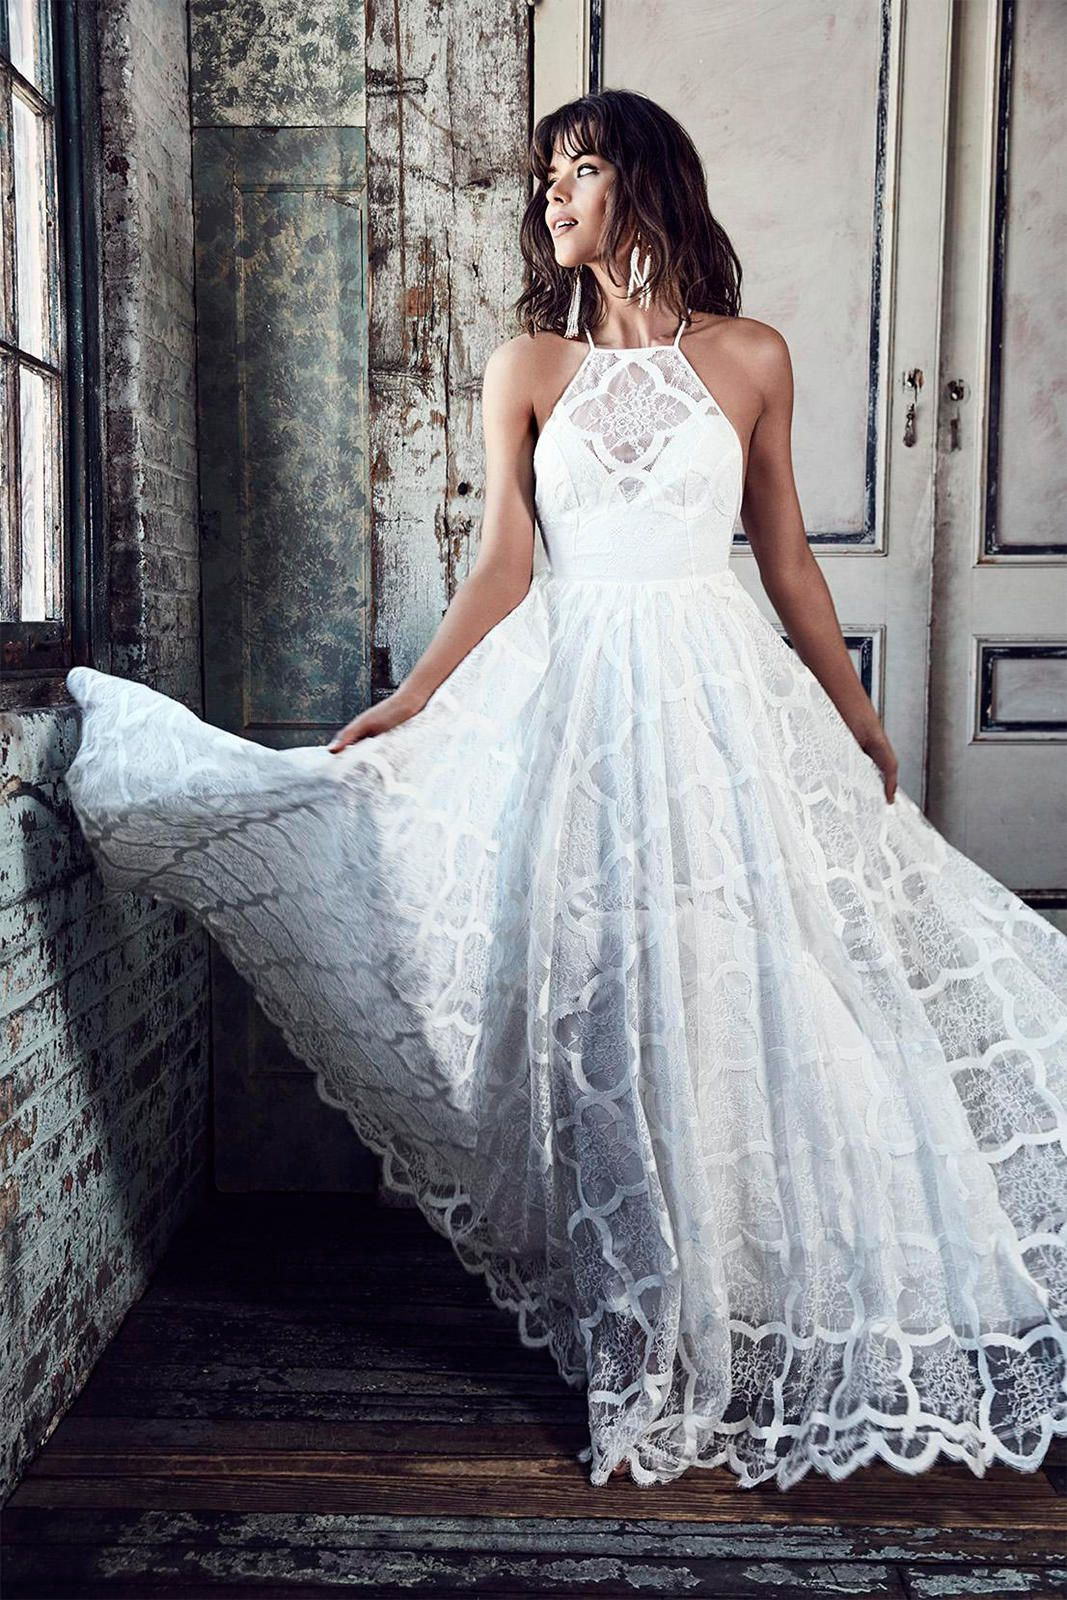 Lace halter wedding dress  HARRIET  wedding  Pinterest  Gowns Wedding dress and Lace